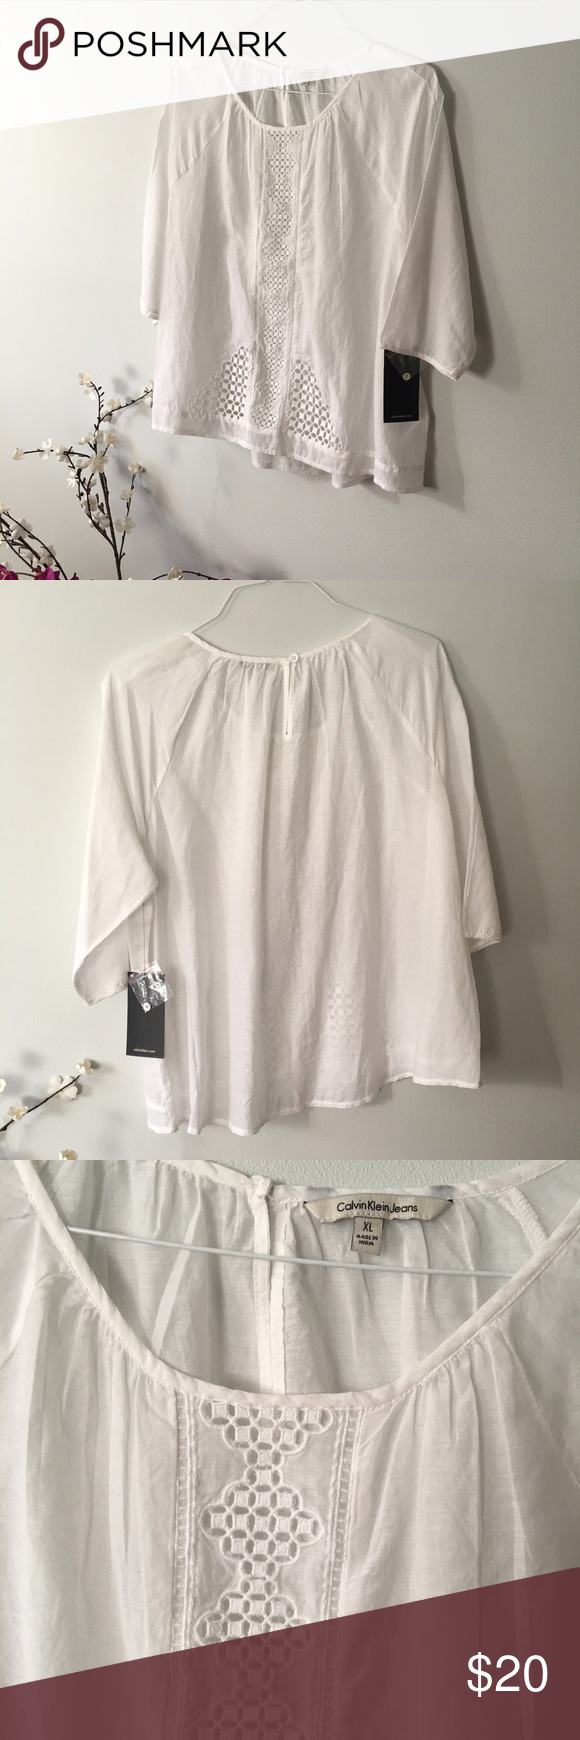 NWT CALVIN KLEIN 3/4 Sleeve Blousr SZ XL New with Tags. Lightweight top with embroidered neckline. Please message me if you have any questions or if you would like any additional information on this top. Calvin Klein Tops Tunics